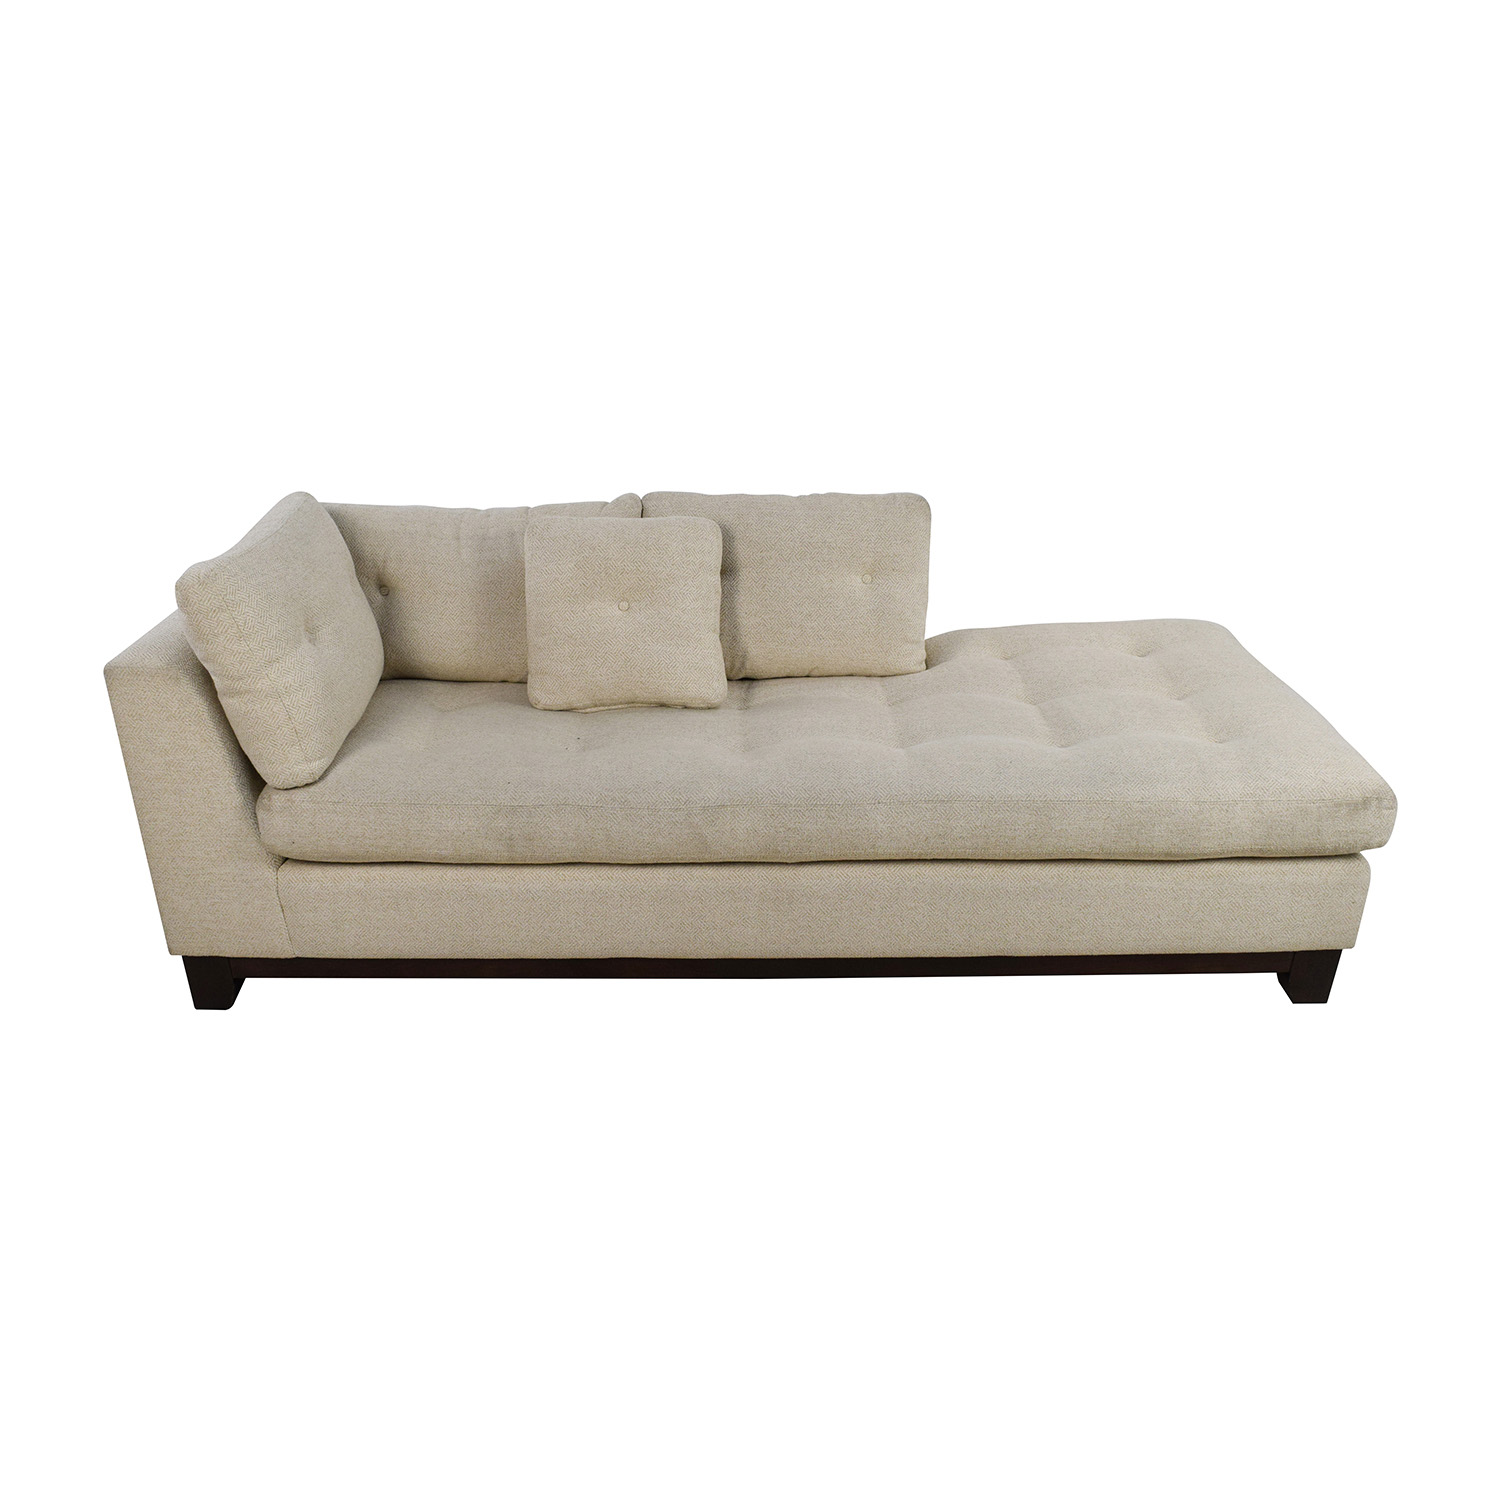 Freestyle Freestyle Tufted Natural Fabric Sofa Chaise second hand